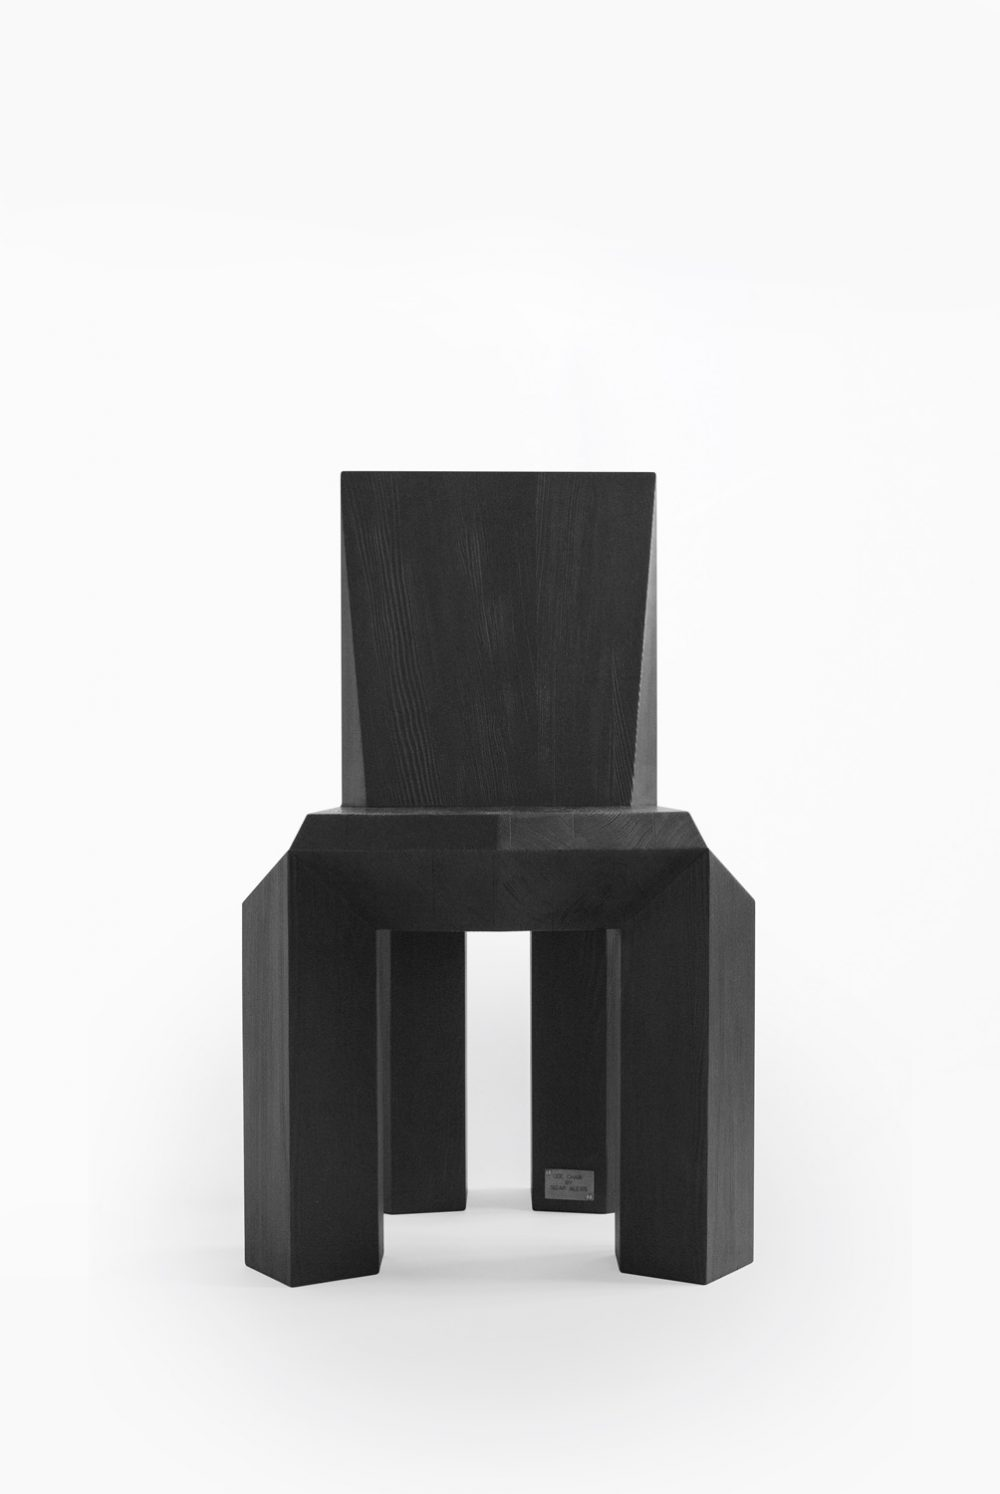 Sizar Alexis Ode Chair Charred Wood Pine